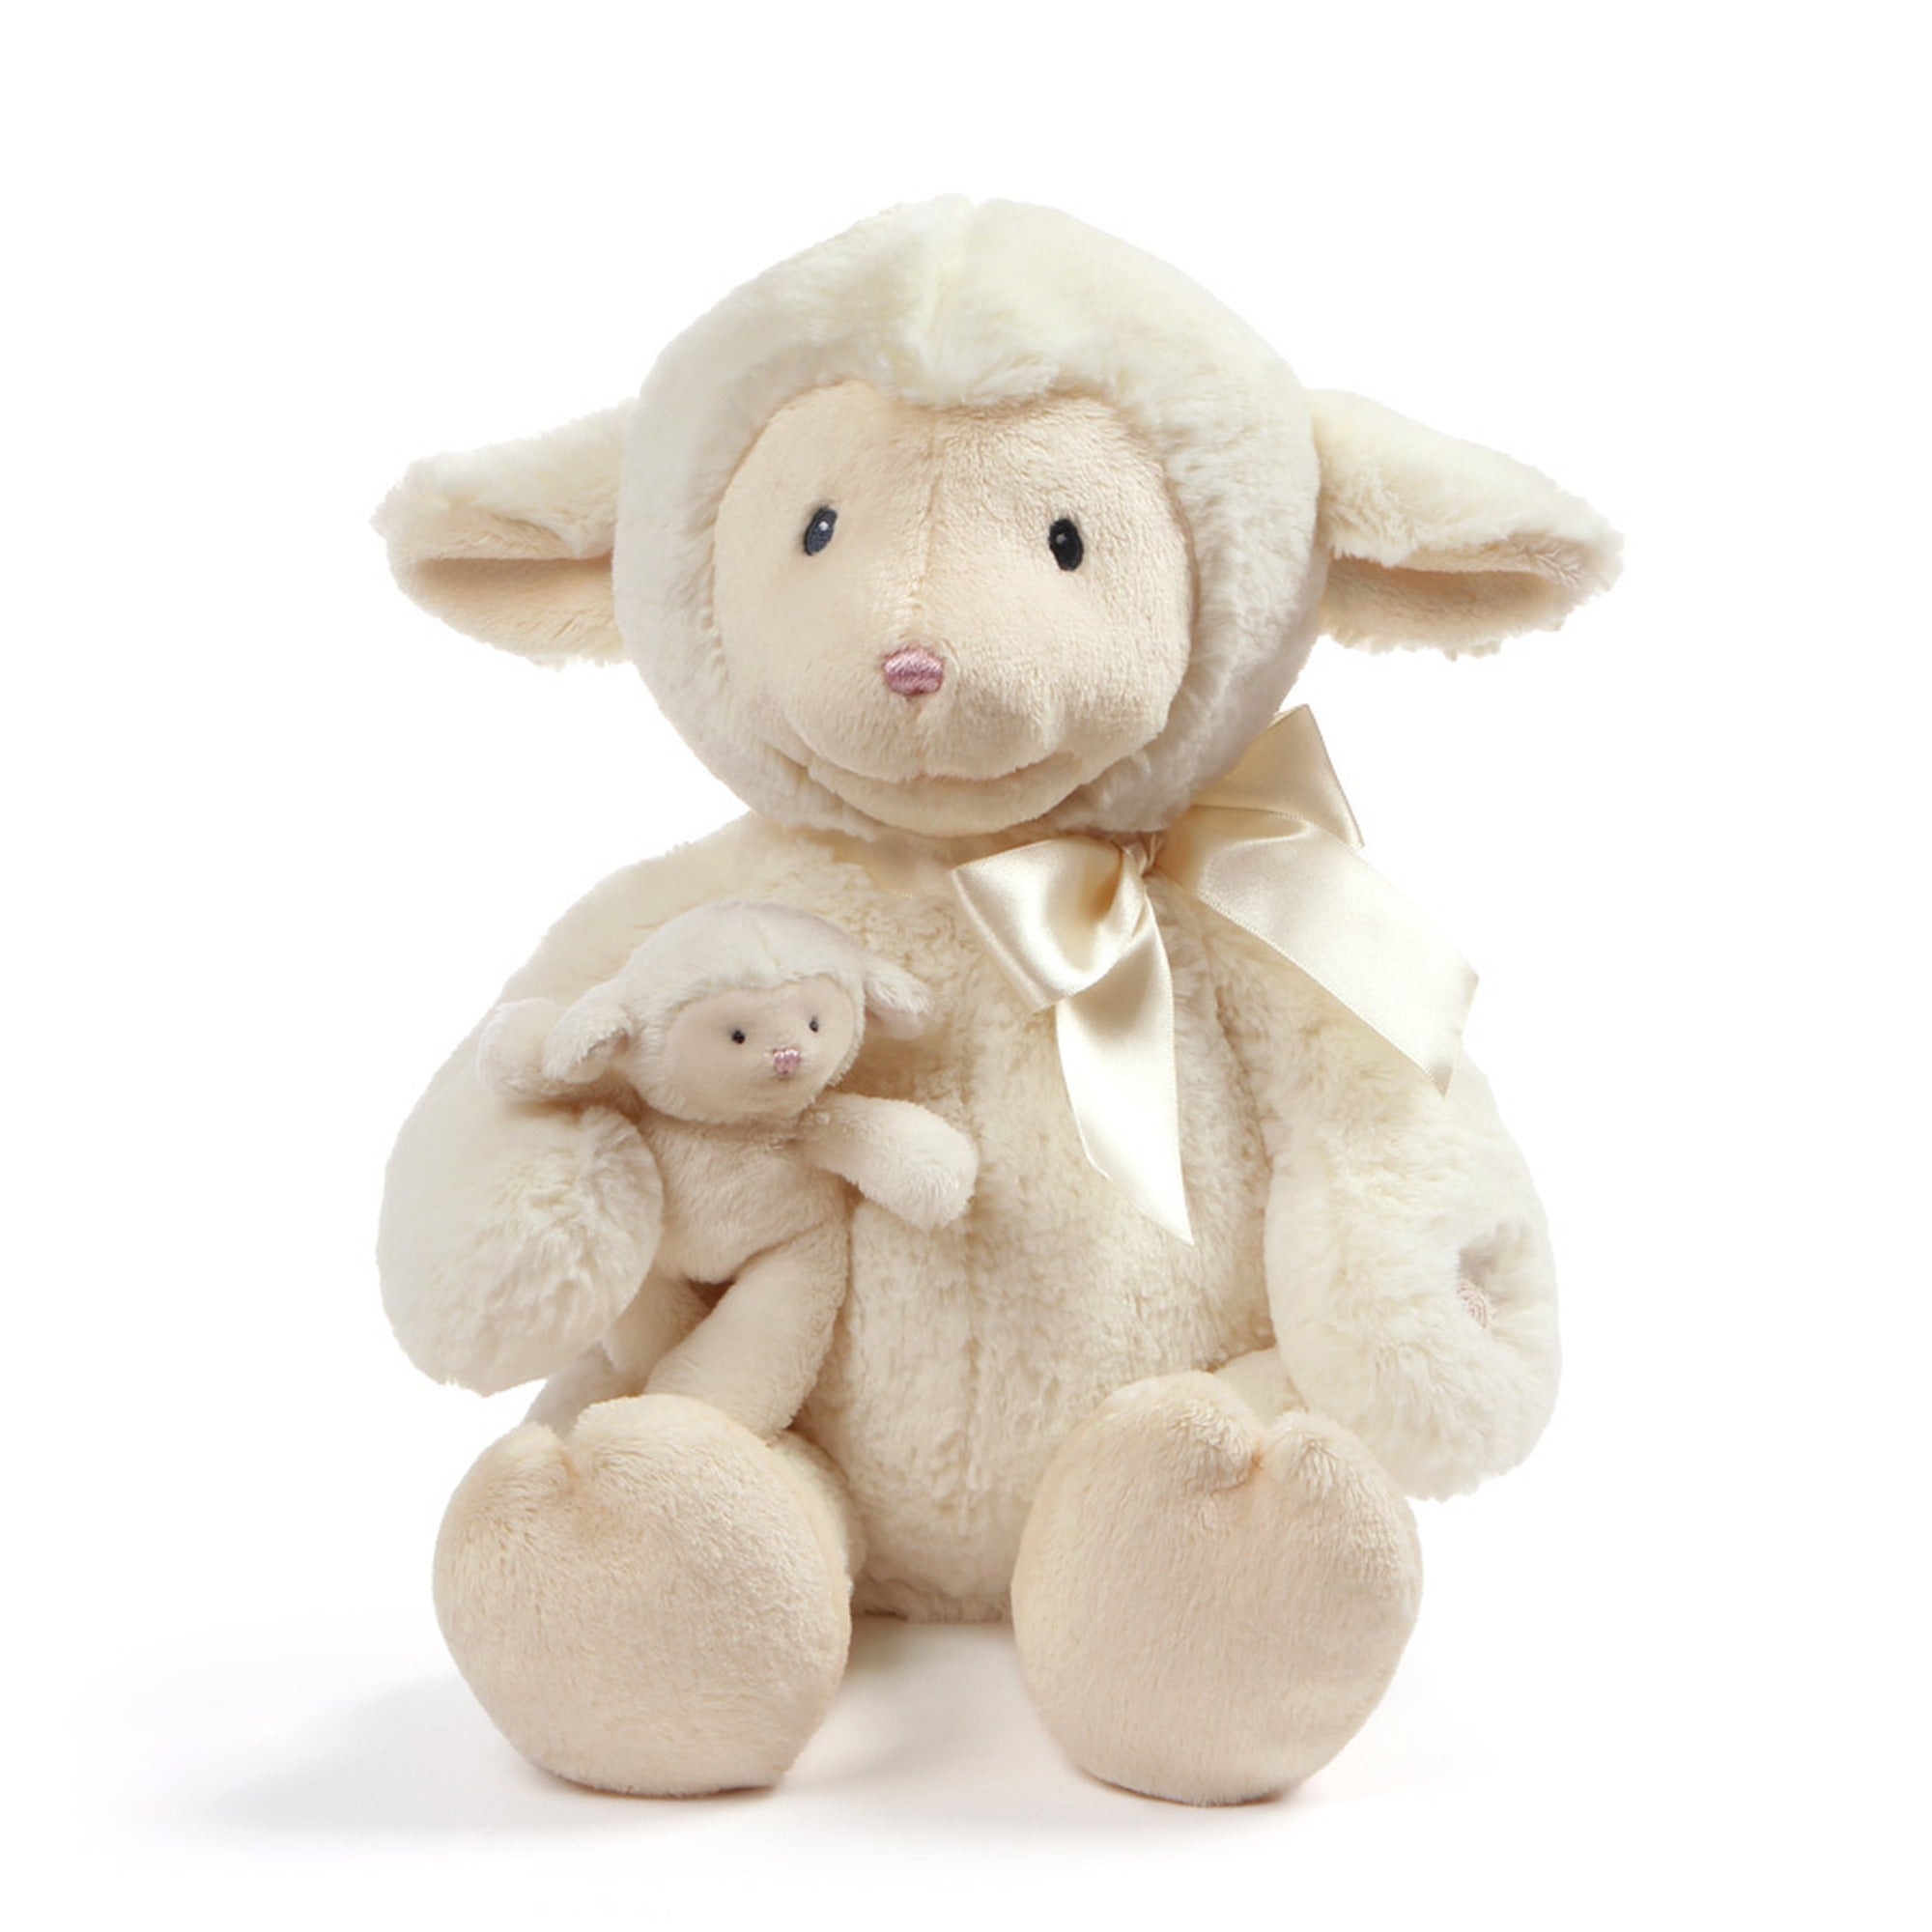 Baby Gund - Nursery Time Lamb - 10""